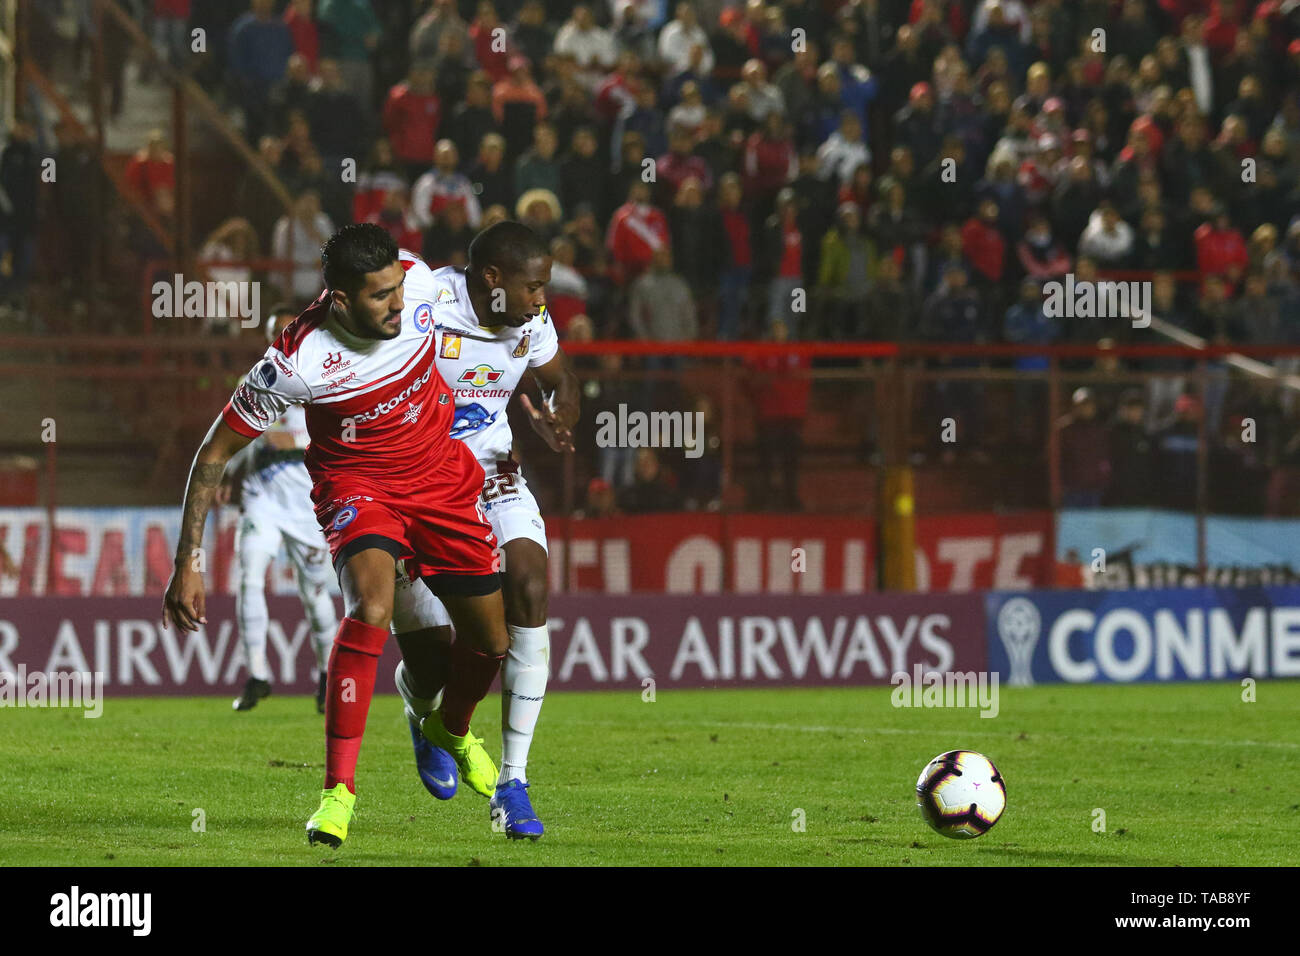 BUENOS AIRES, 23.05.2019: Jonathan Galvan during the match between Argentinos Juniors and Deportes Tolima for the 2nd round of Conmebol Sudamericana C - Stock Image